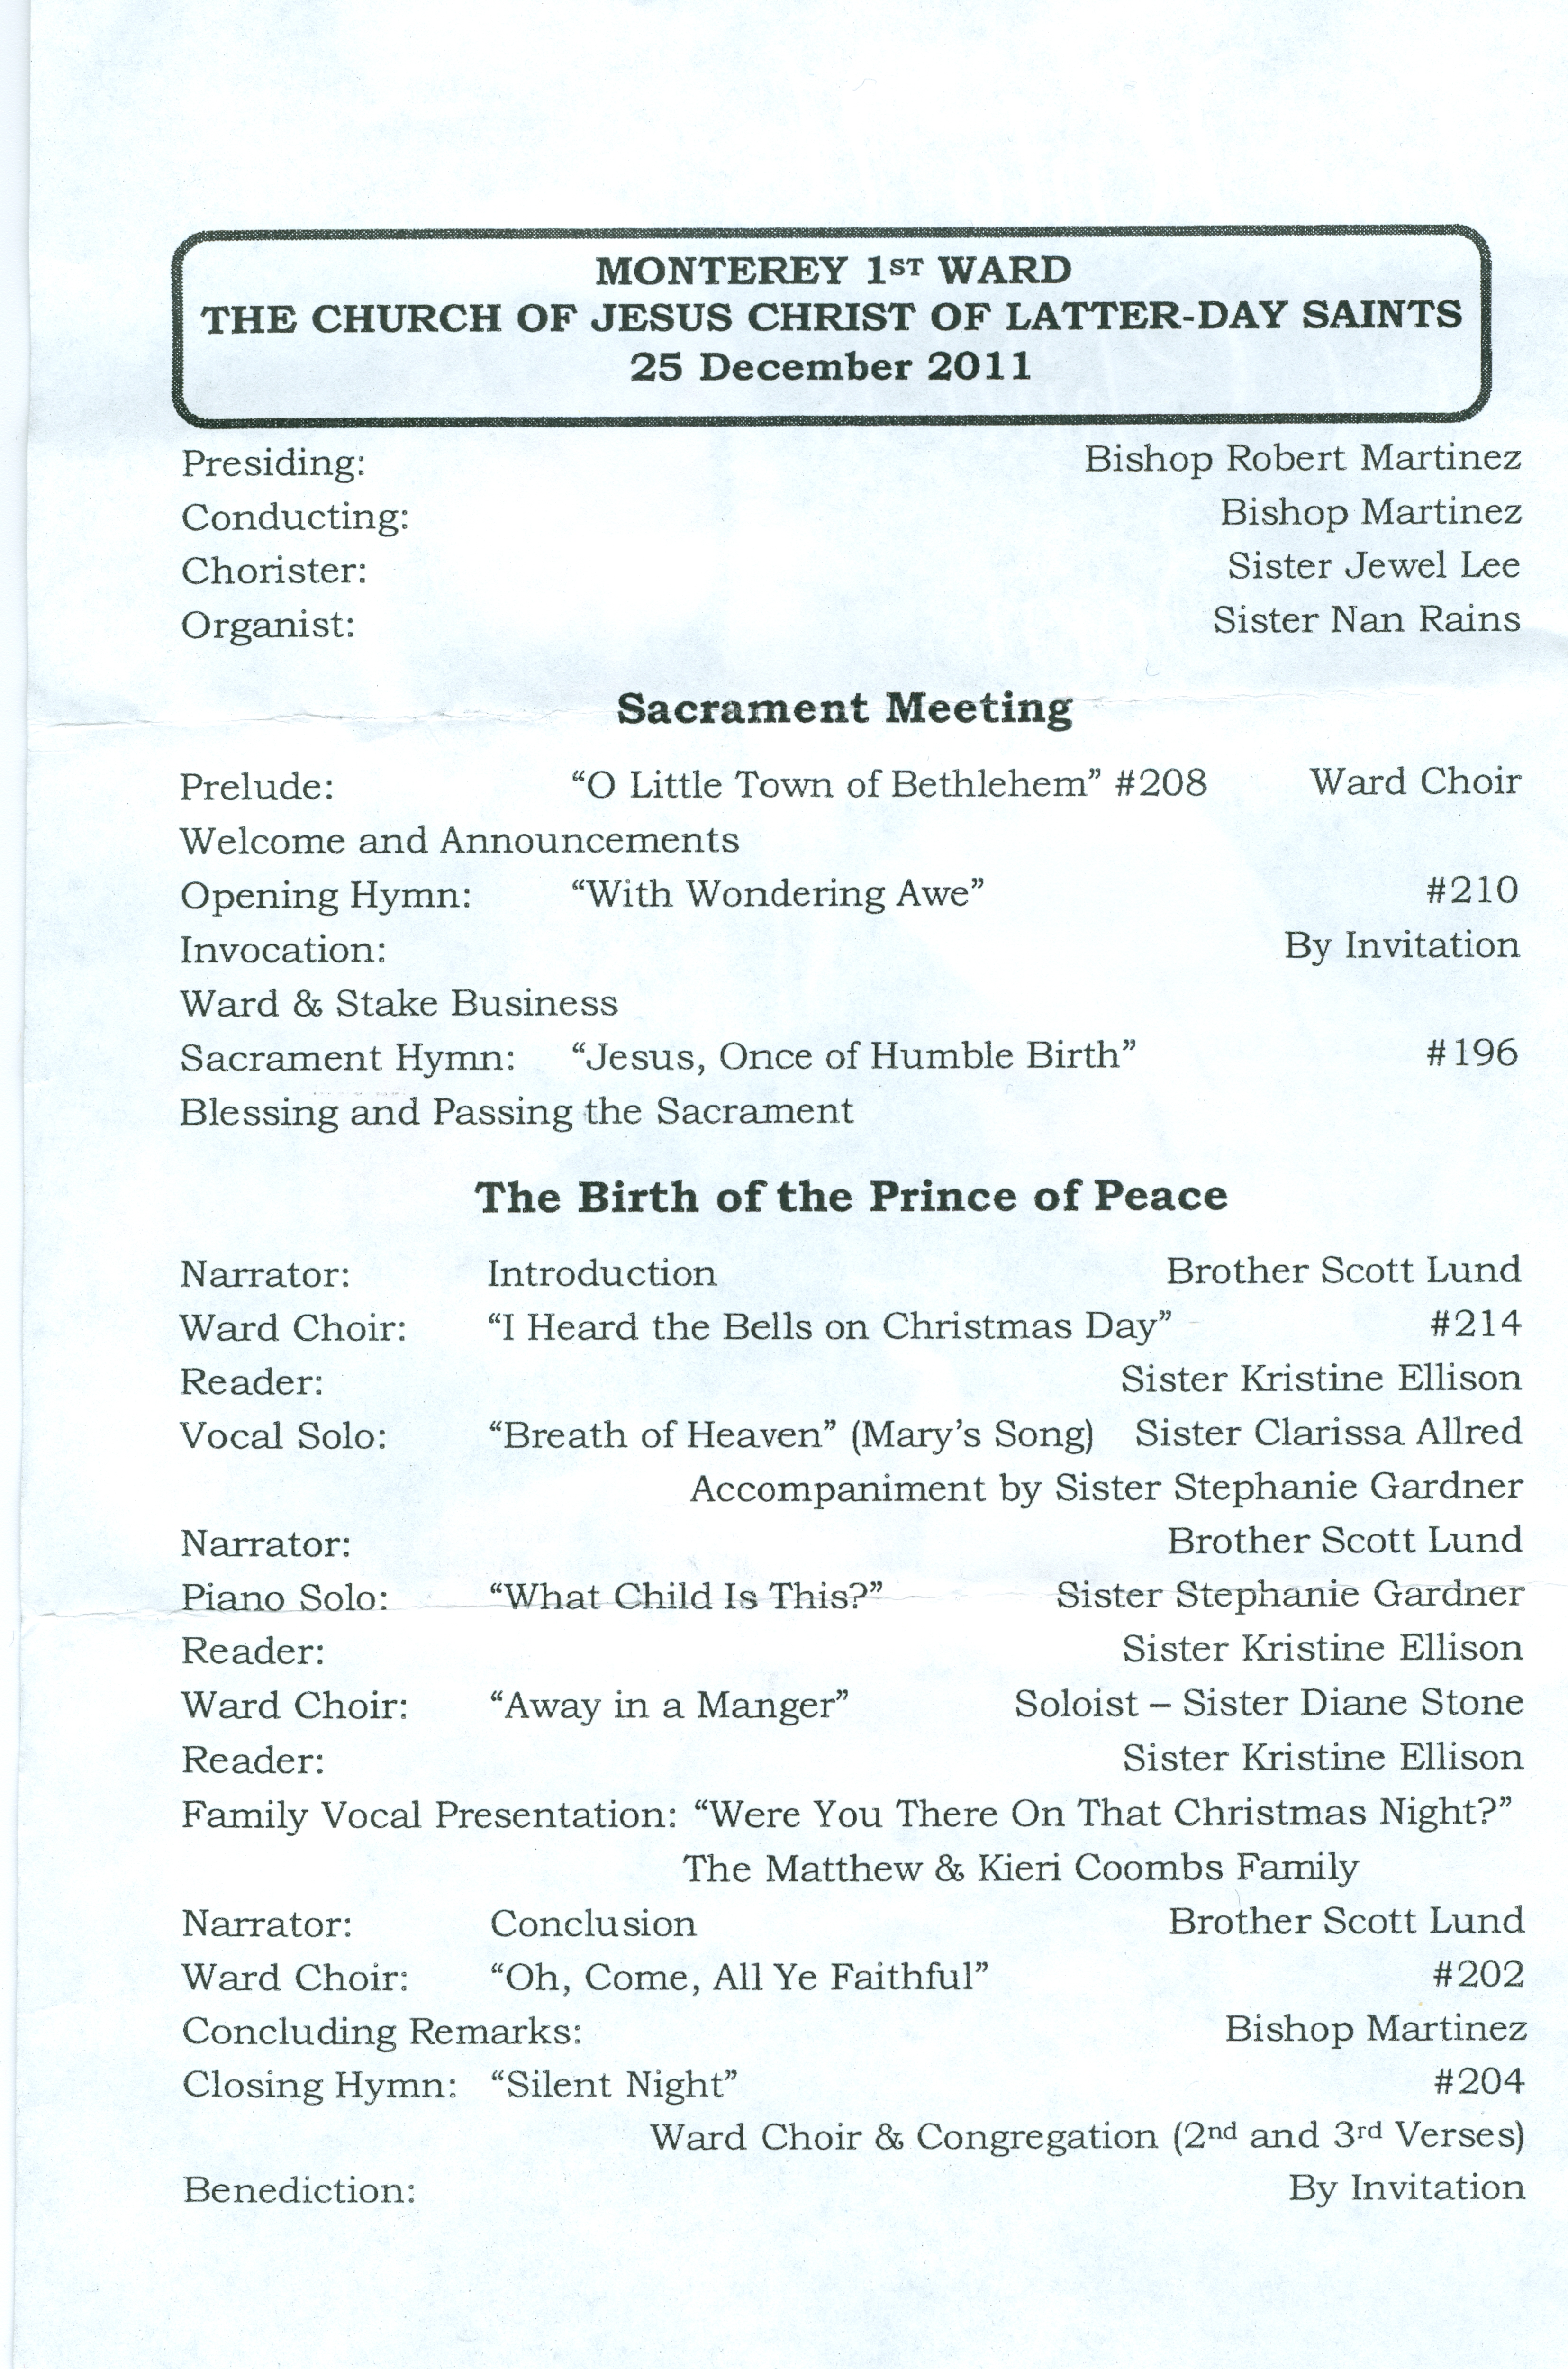 ... at 1 pm, where Scott Lund was the narrator for the Christmas program